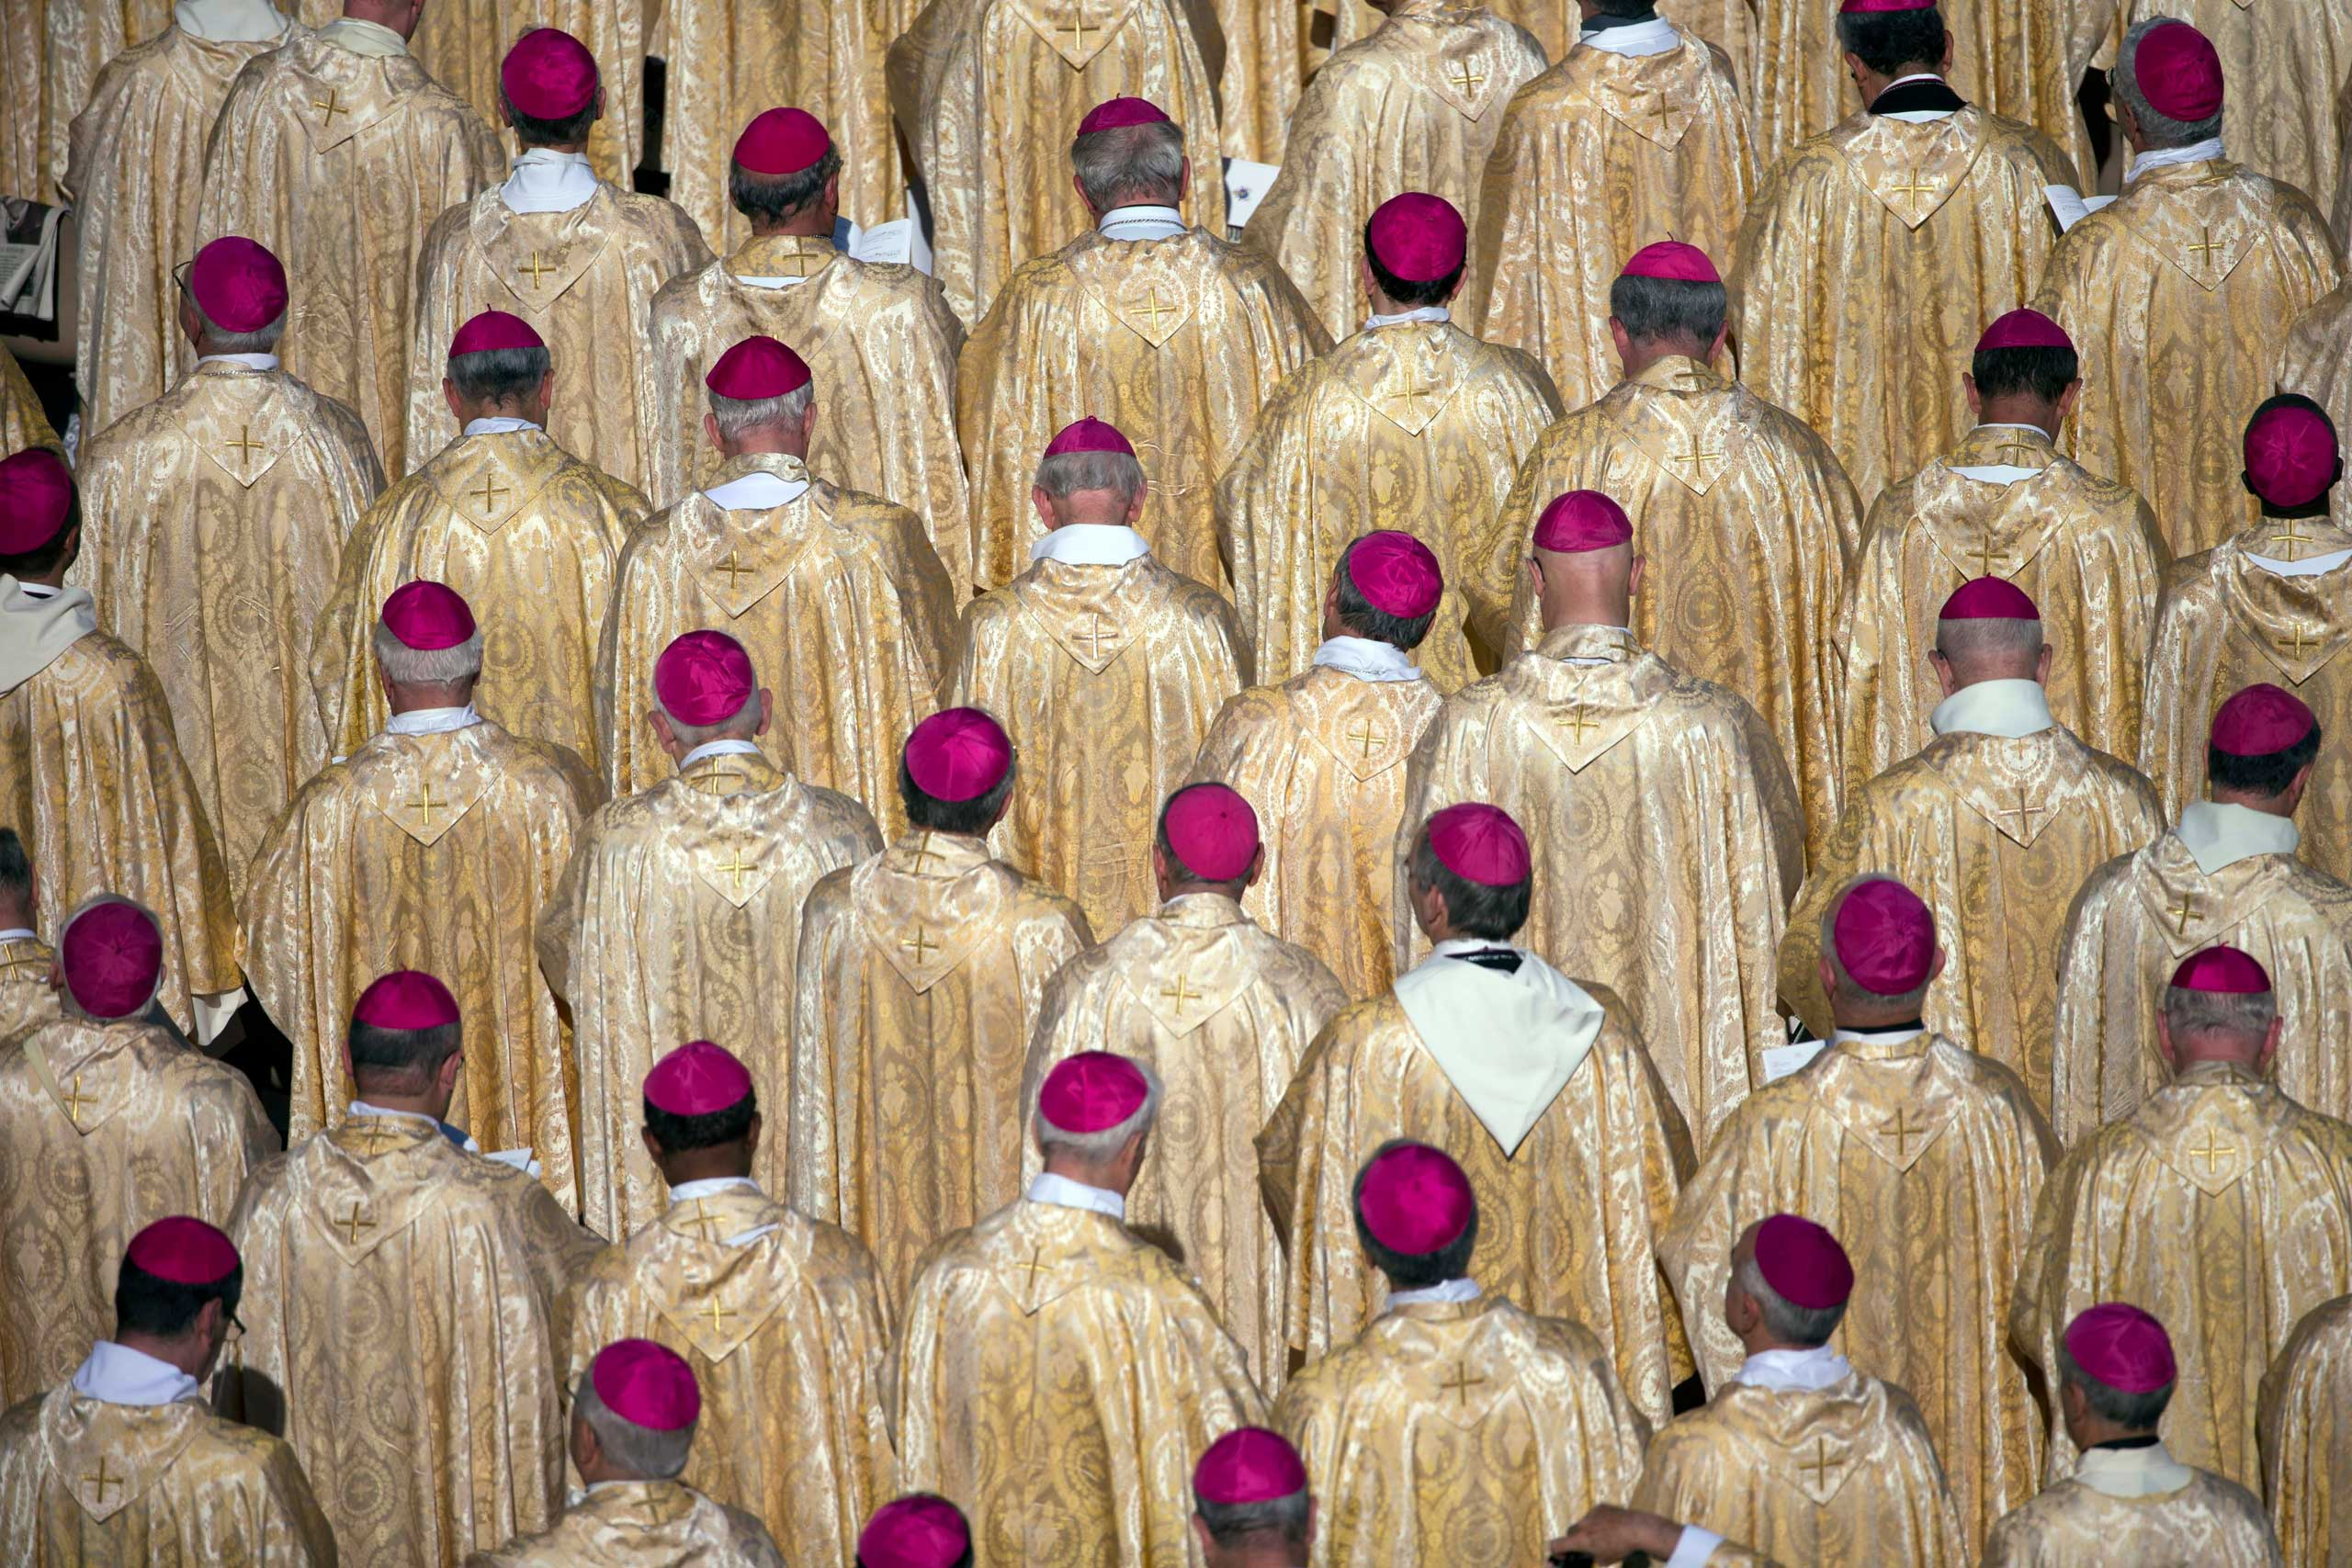 Oct. 19, 2014. Bishops attend the beatification ceremony of Pope Paul VI, and a mass for the closing of of a two-week synod on family issues, celebrated by Pope Francis, in Saint Peter's Square at the Vatican.